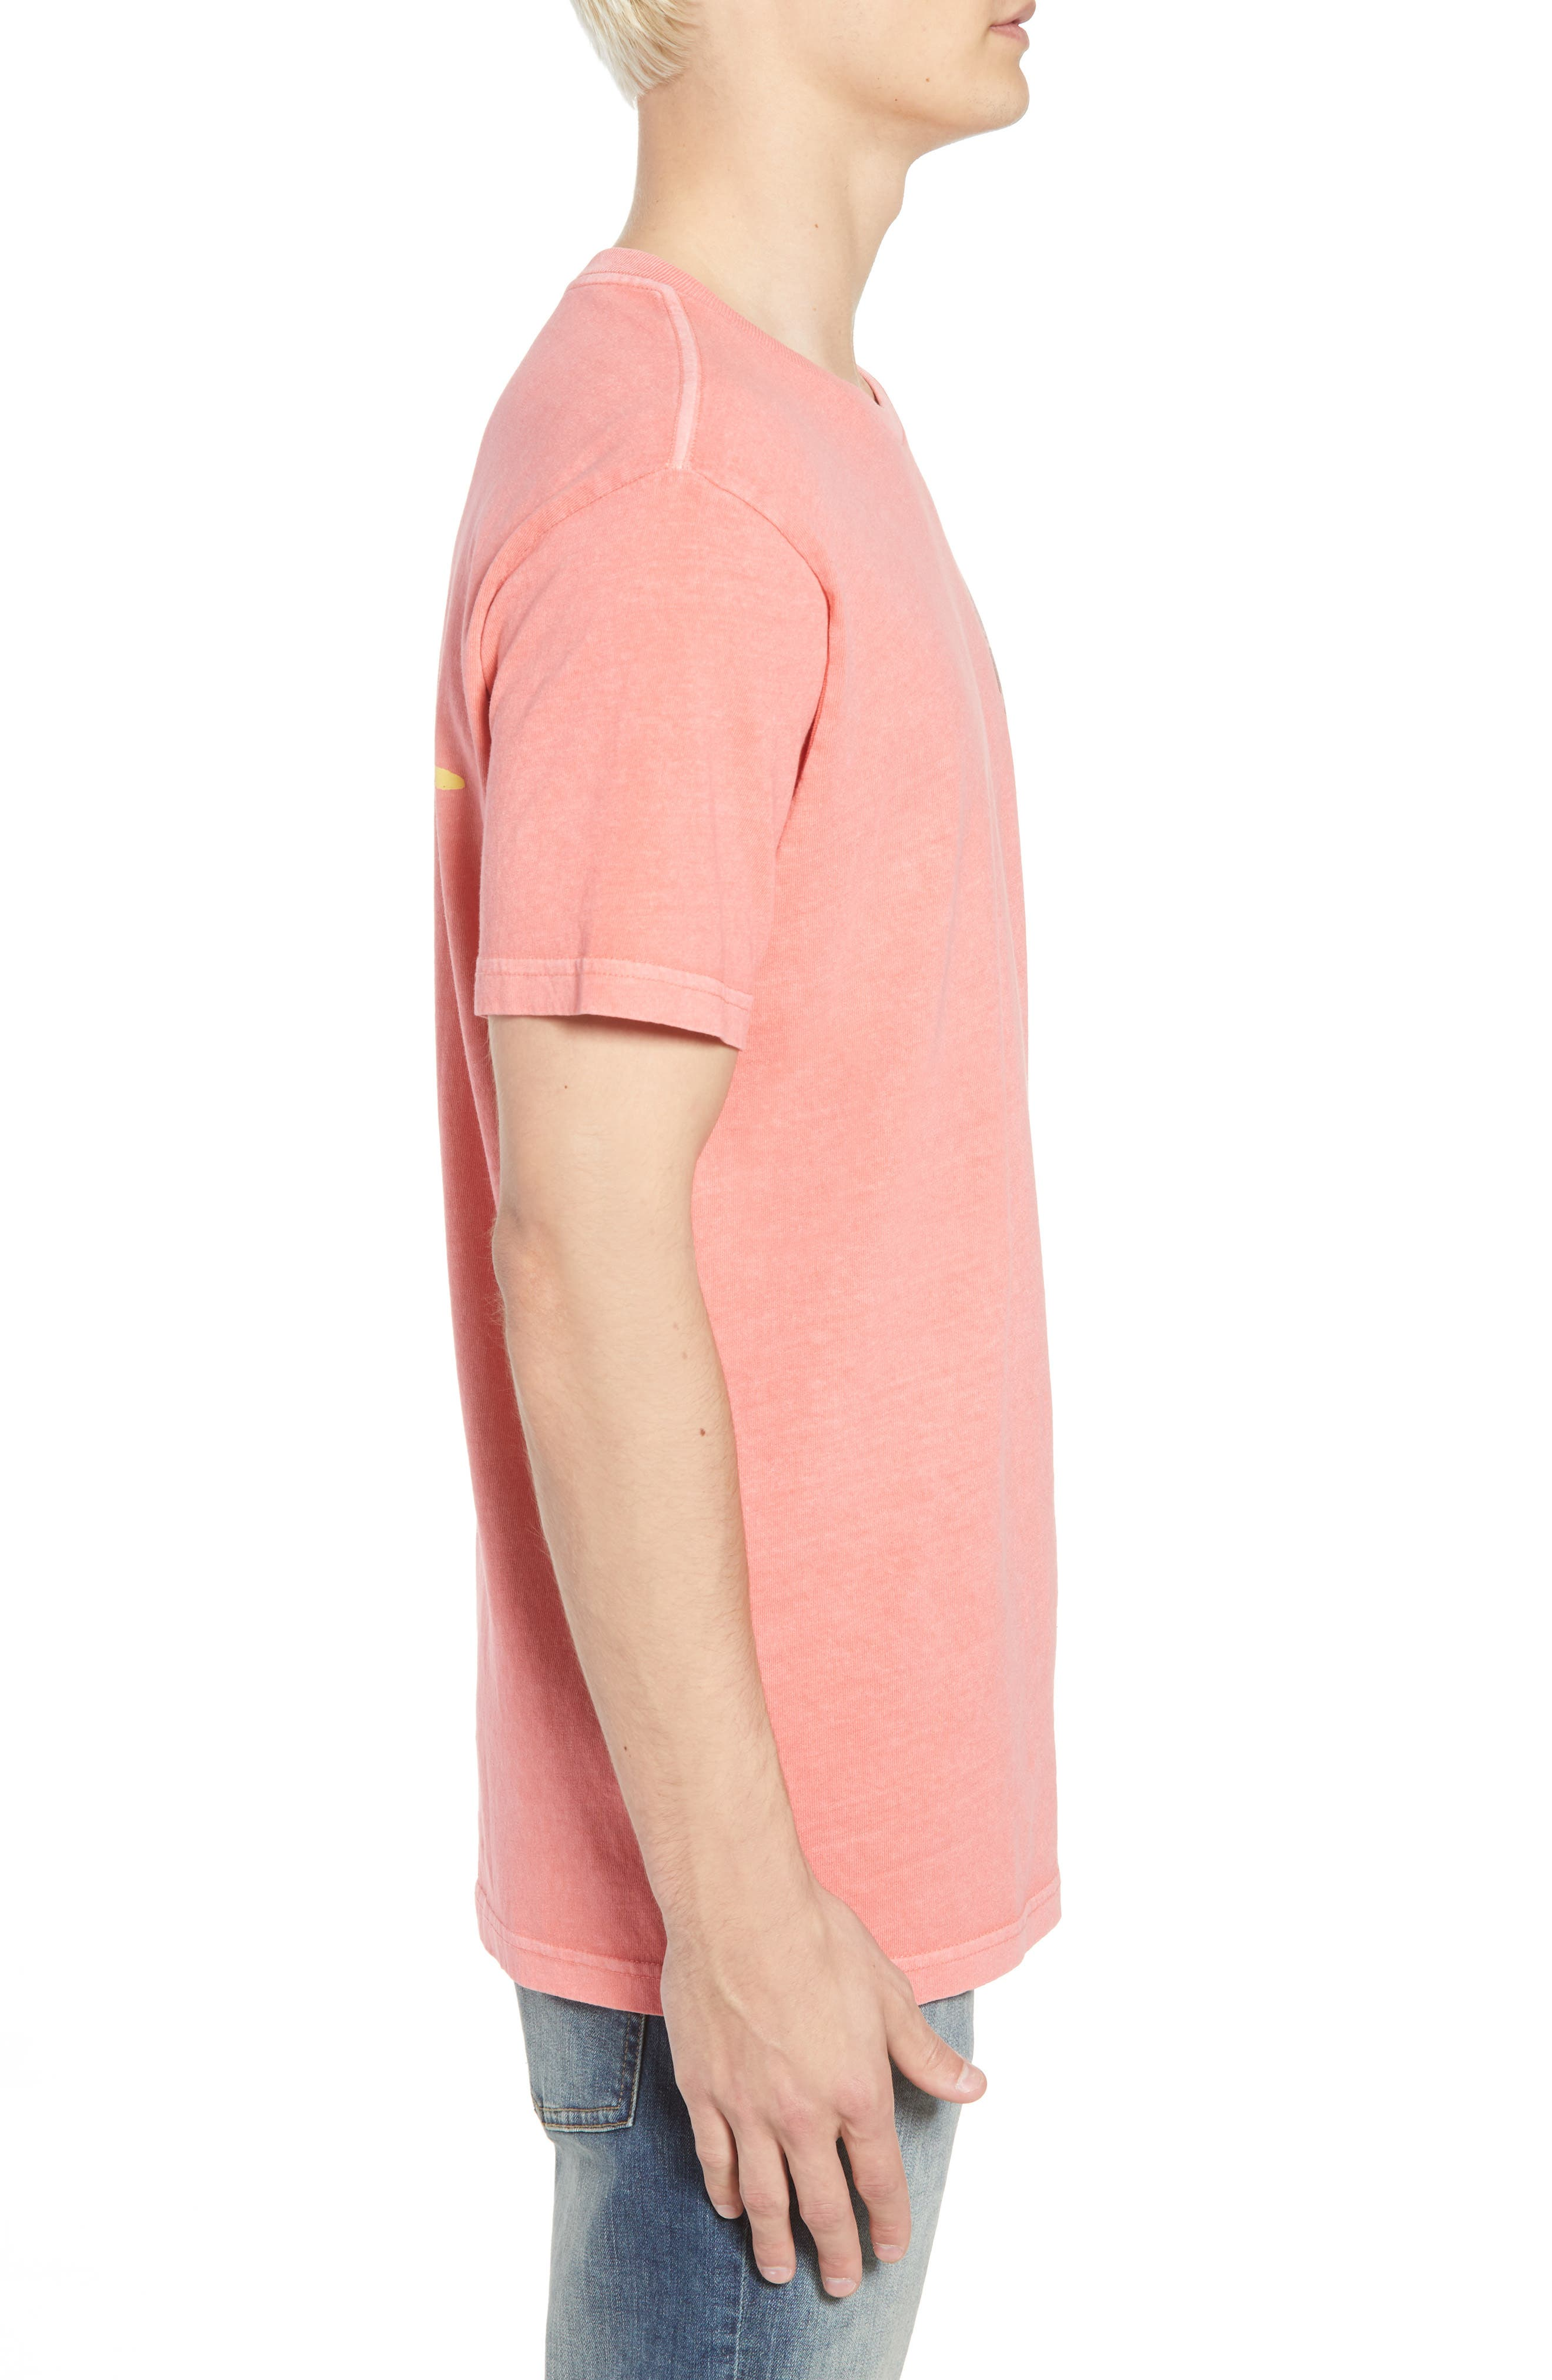 Campbell Brothers T-Shirt,                             Alternate thumbnail 3, color,                             PINK